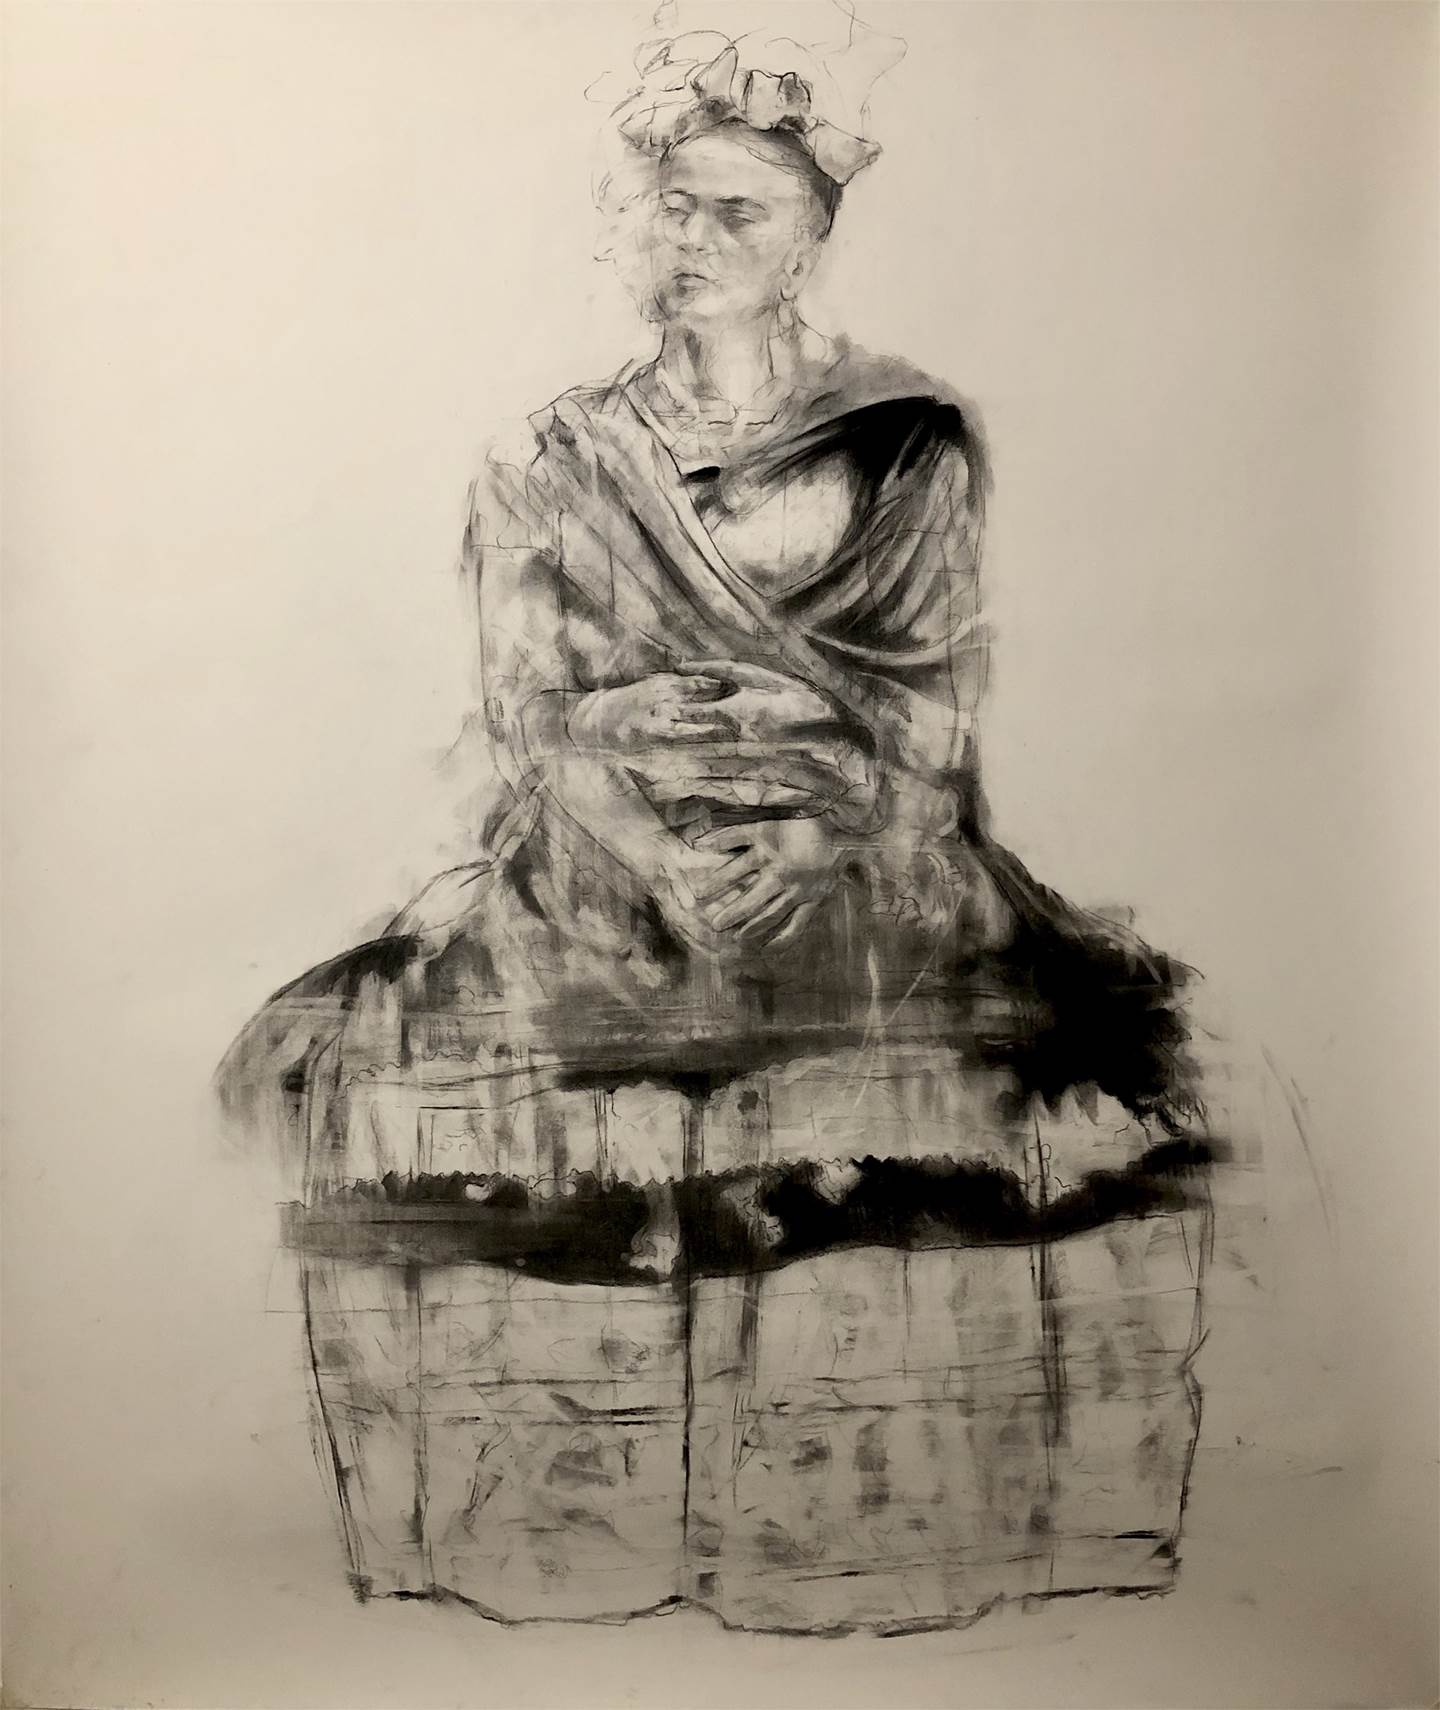 Everybody Loves Frida, original B&W Charcoal Drawing and Illustration by Juan Domingues